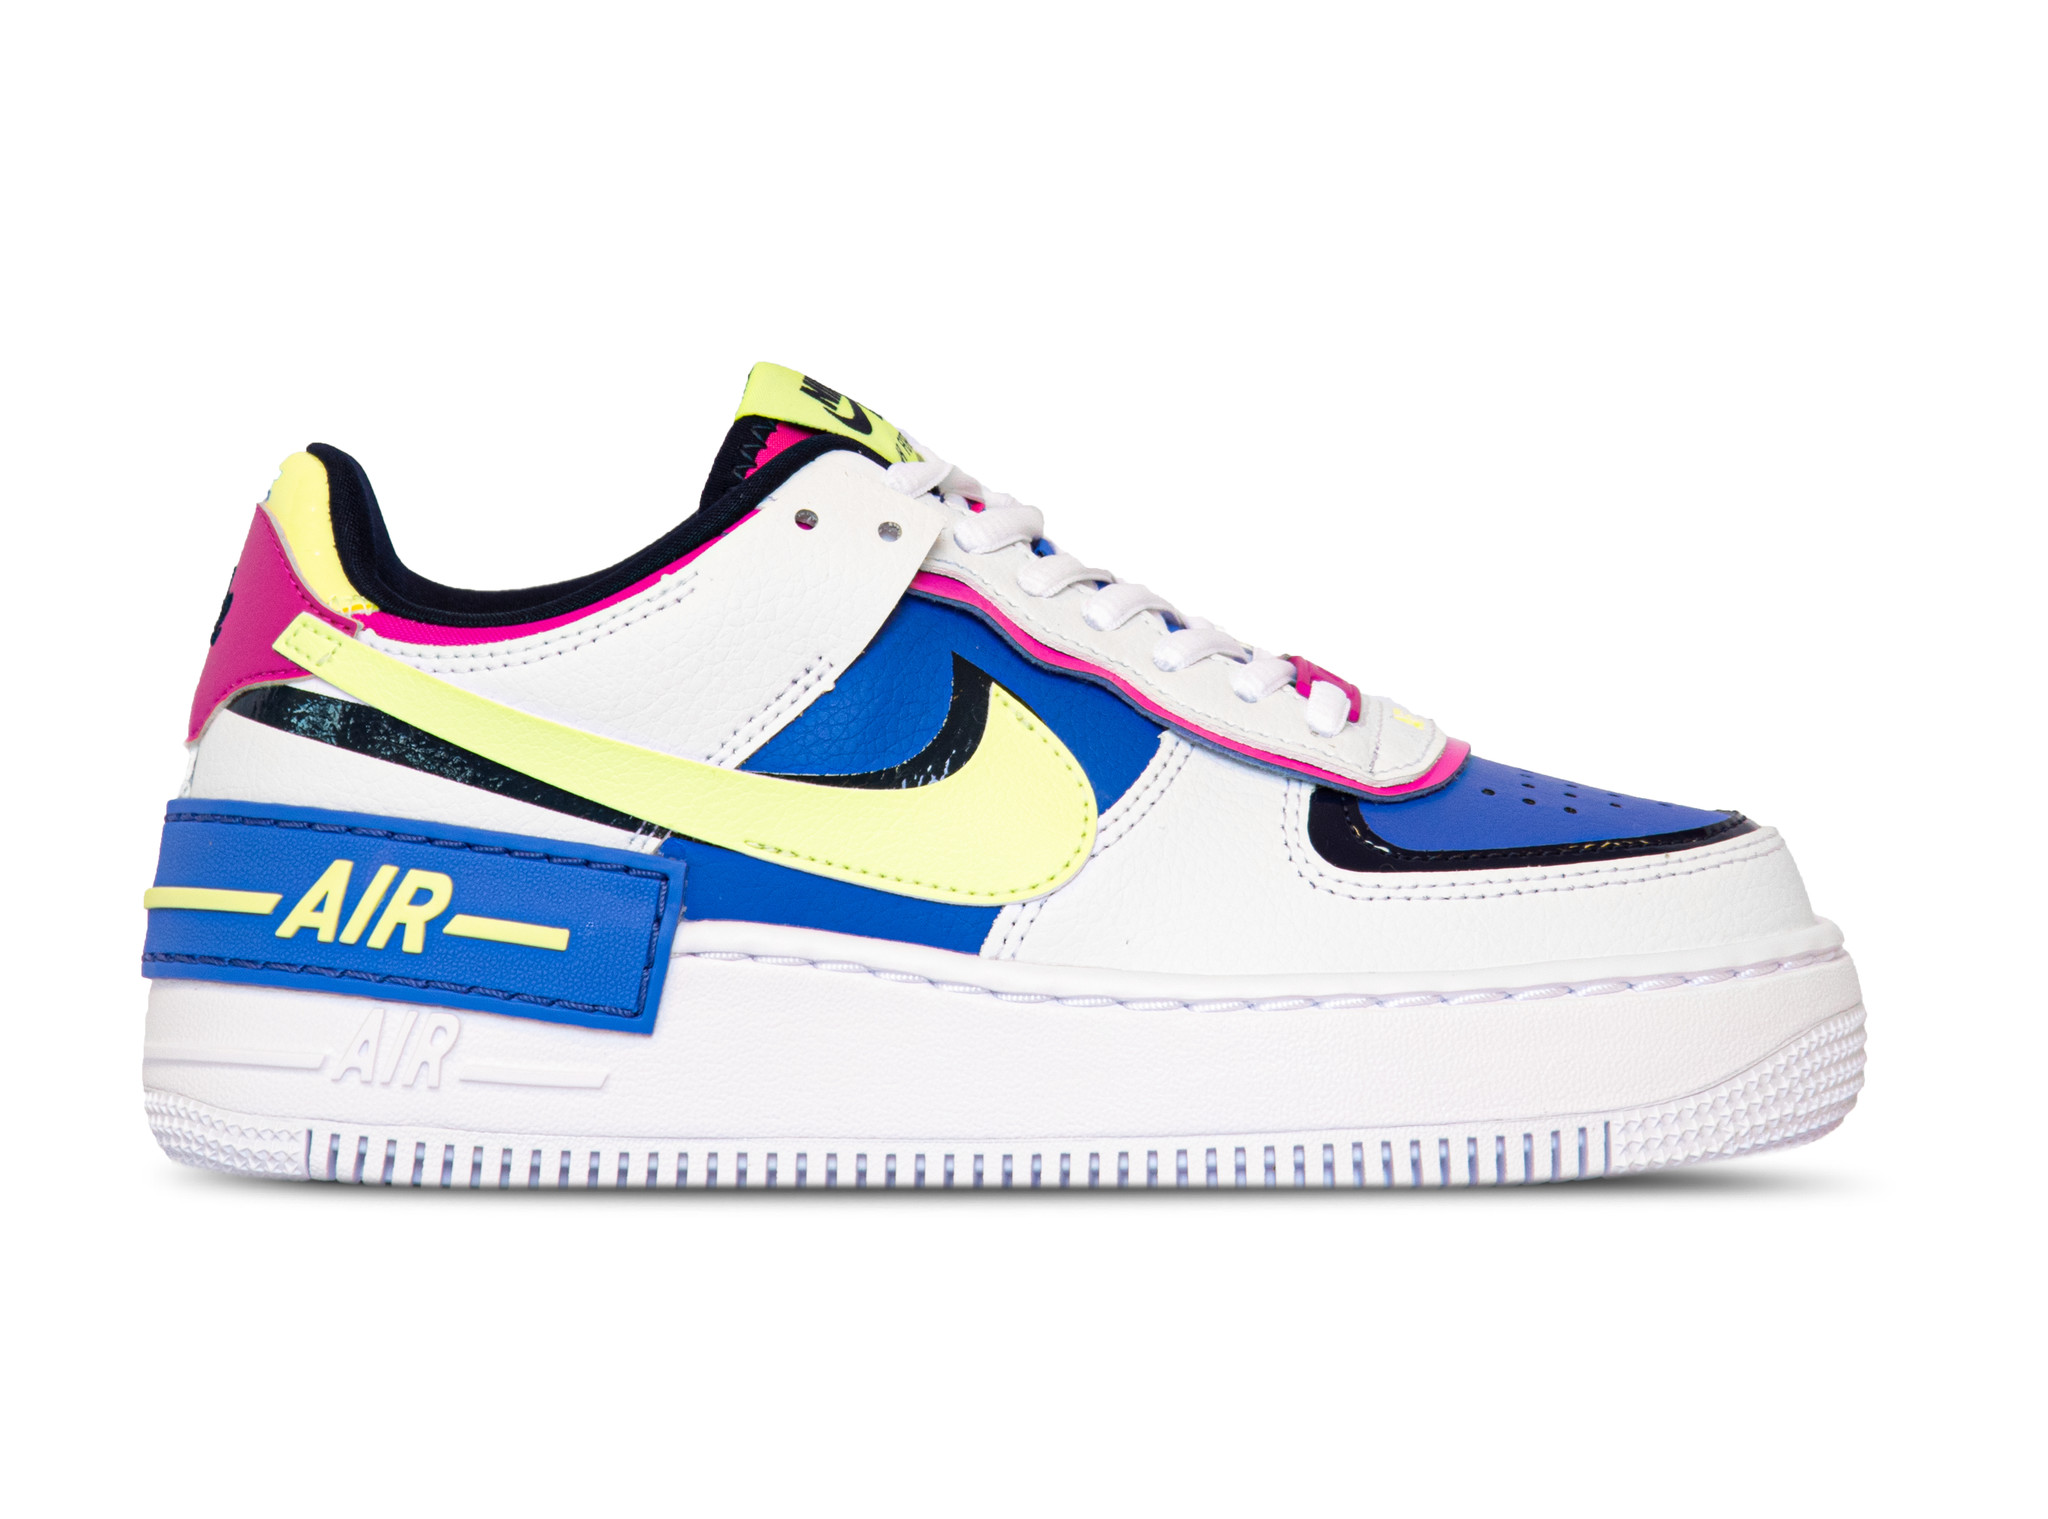 Air Force 1 Shadow White Barely Volt Sapphire Fire Pink Cj1641 100 Bruut Sneakers Clothing Store Released as a performance silo, nike were targeting. air force 1 shadow white barely volt sapphire fire pink cj1641 100